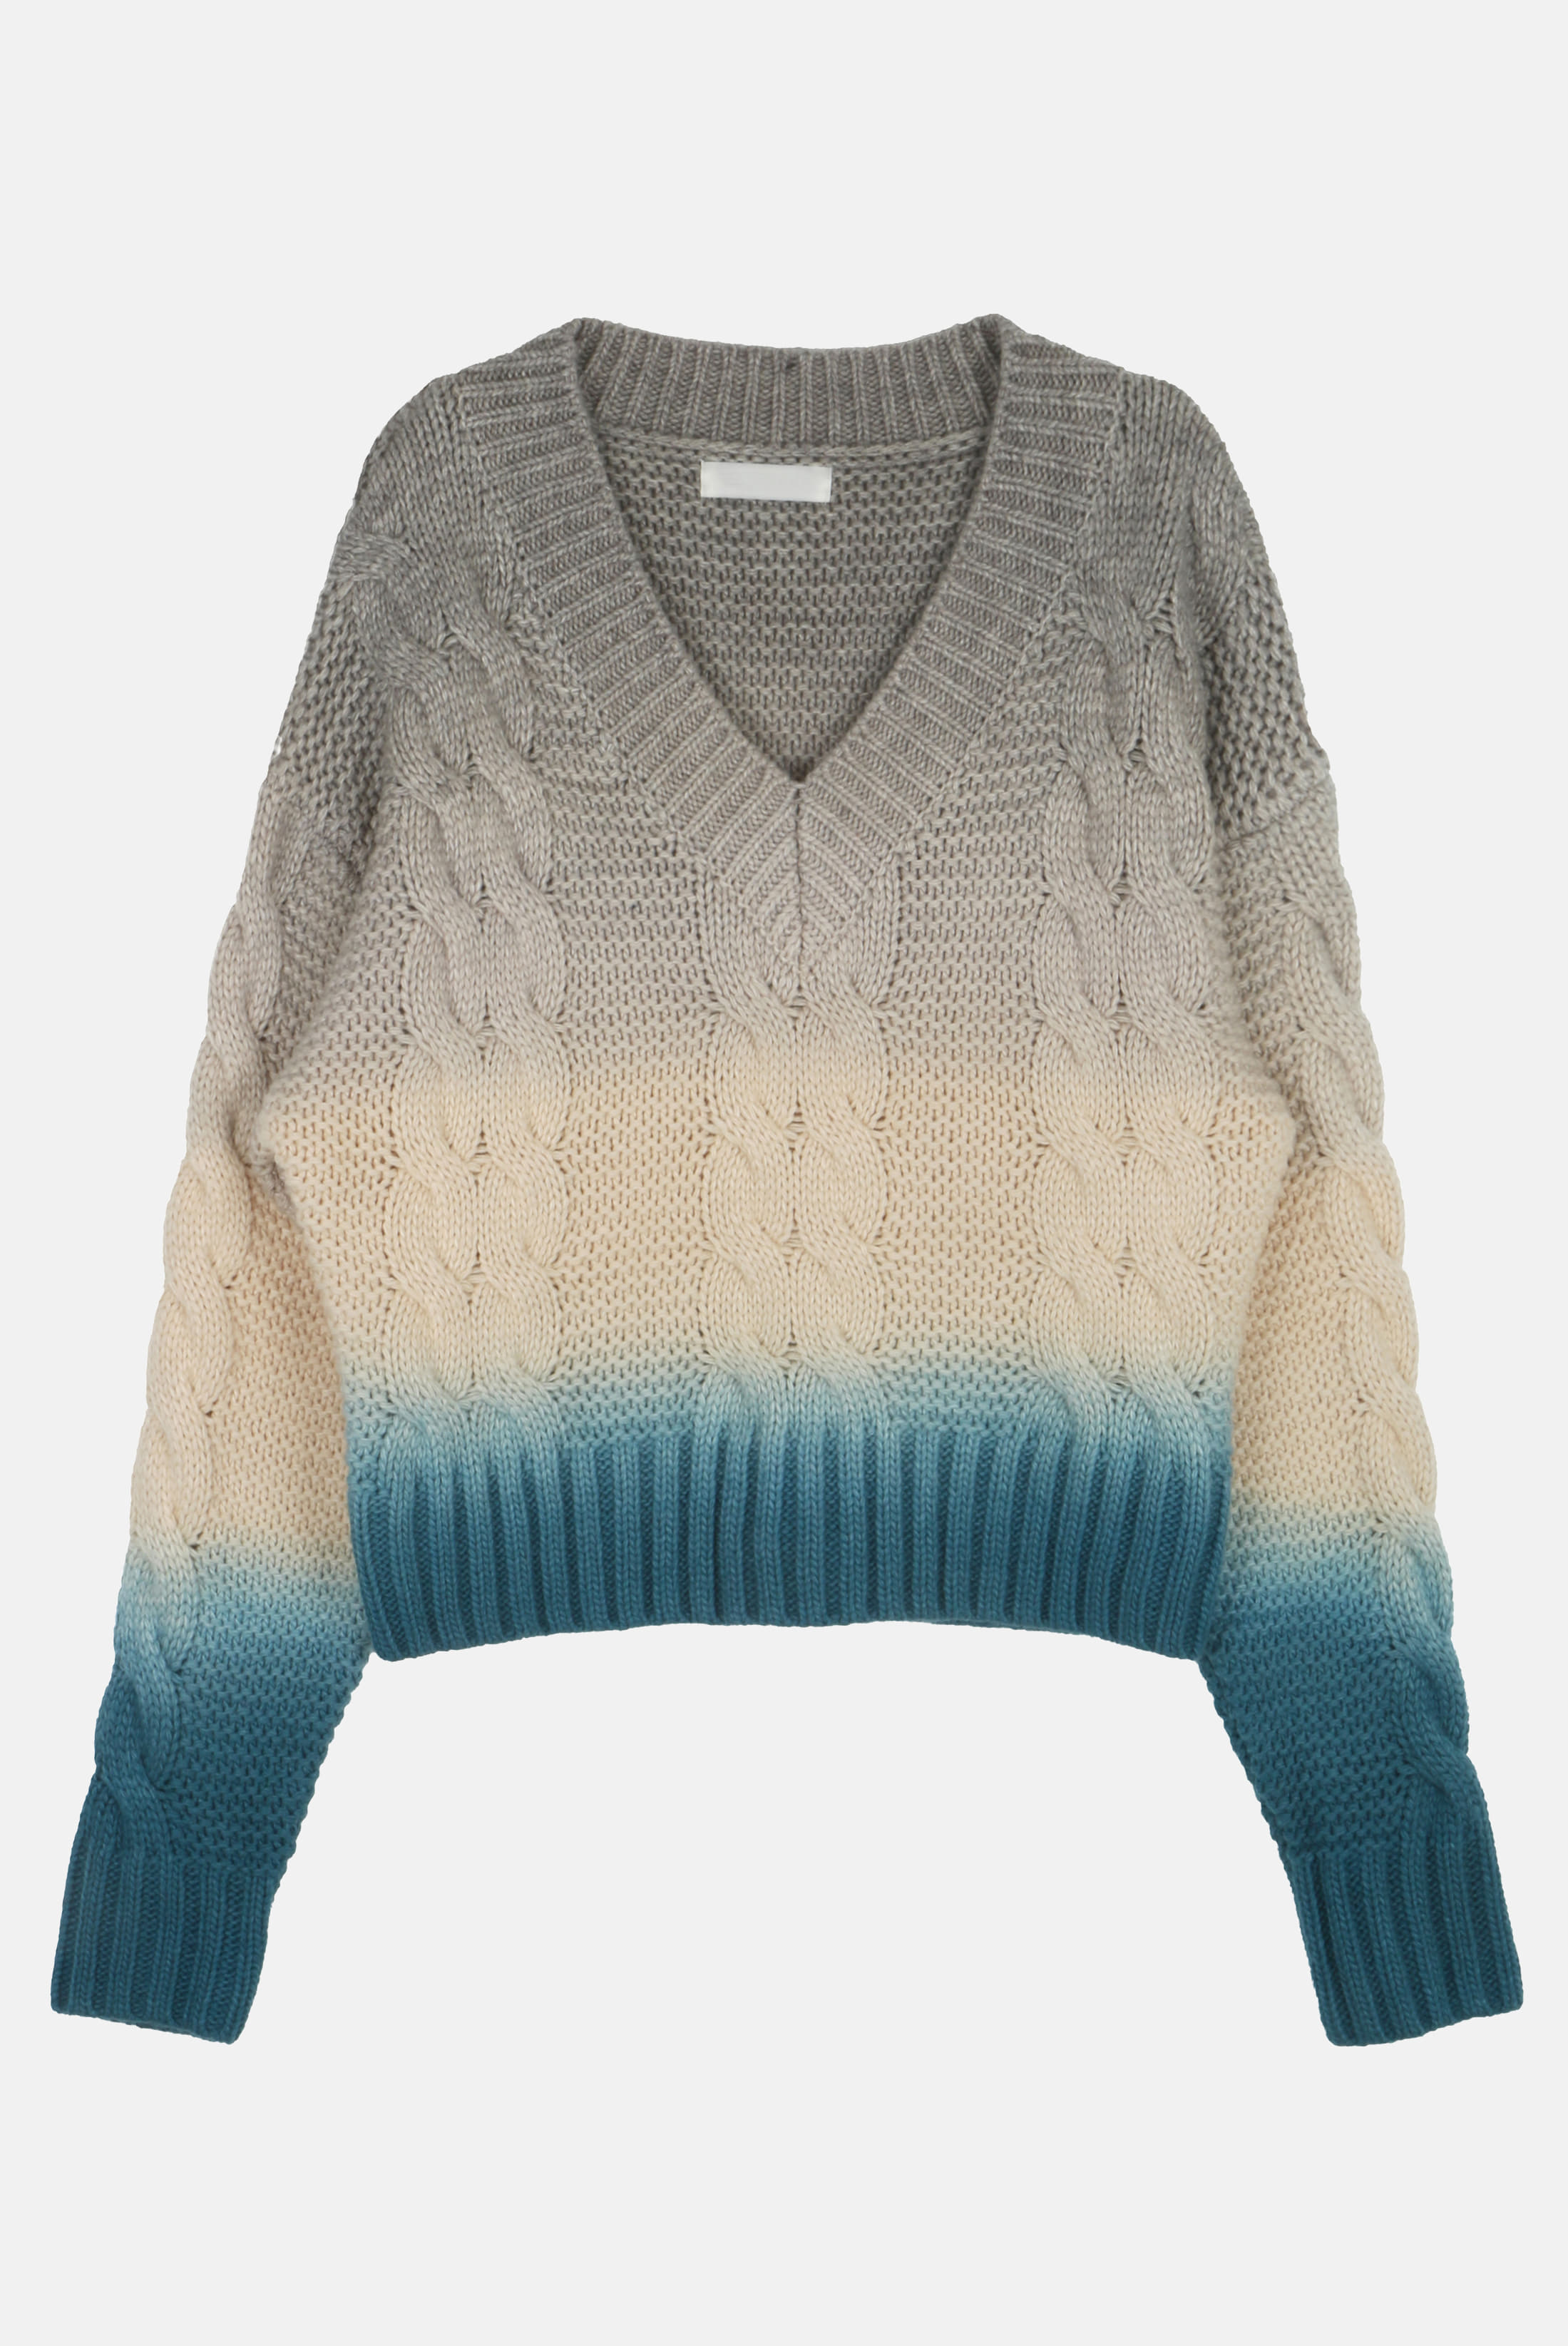 (W) Gradation V_Neck Twist Knit